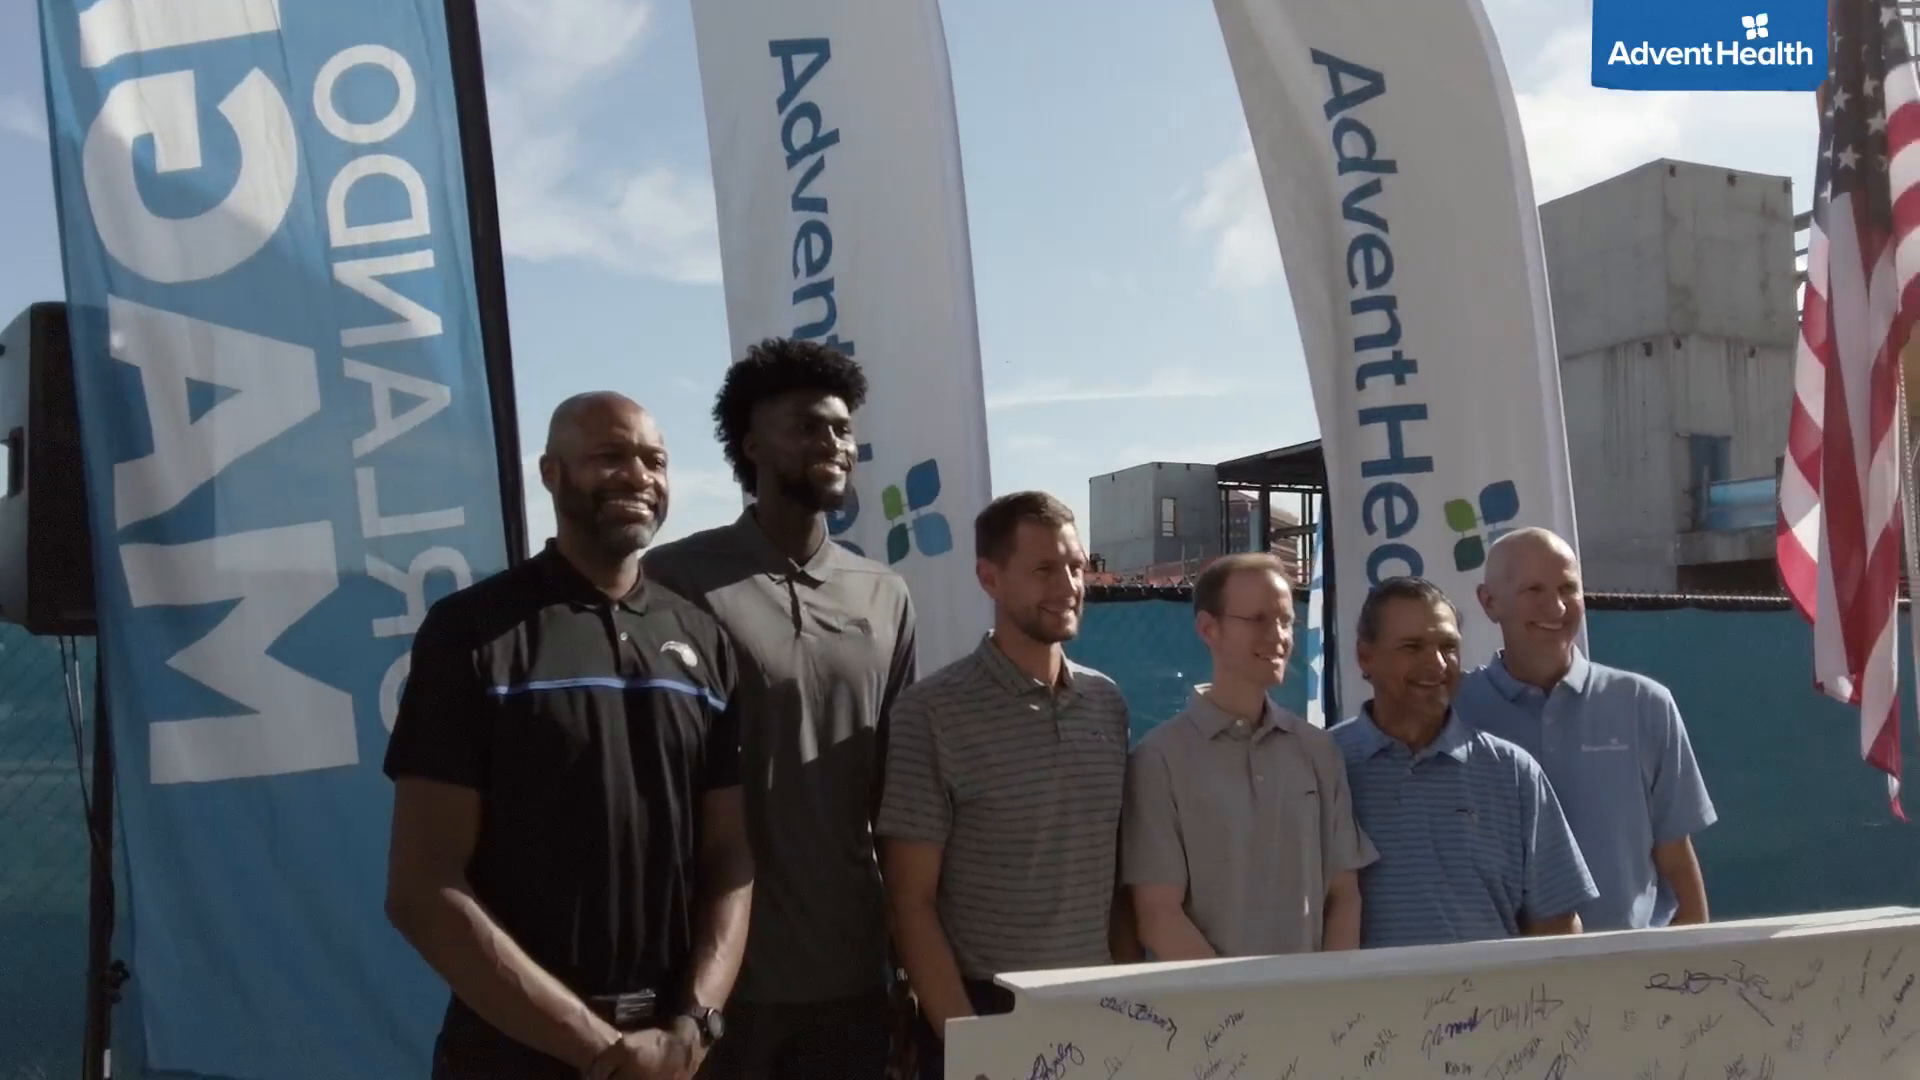 DeVos Family, Orlando Magic and AdventHealth Team Up for AdventHealth Training Center Topping Off Ceremony